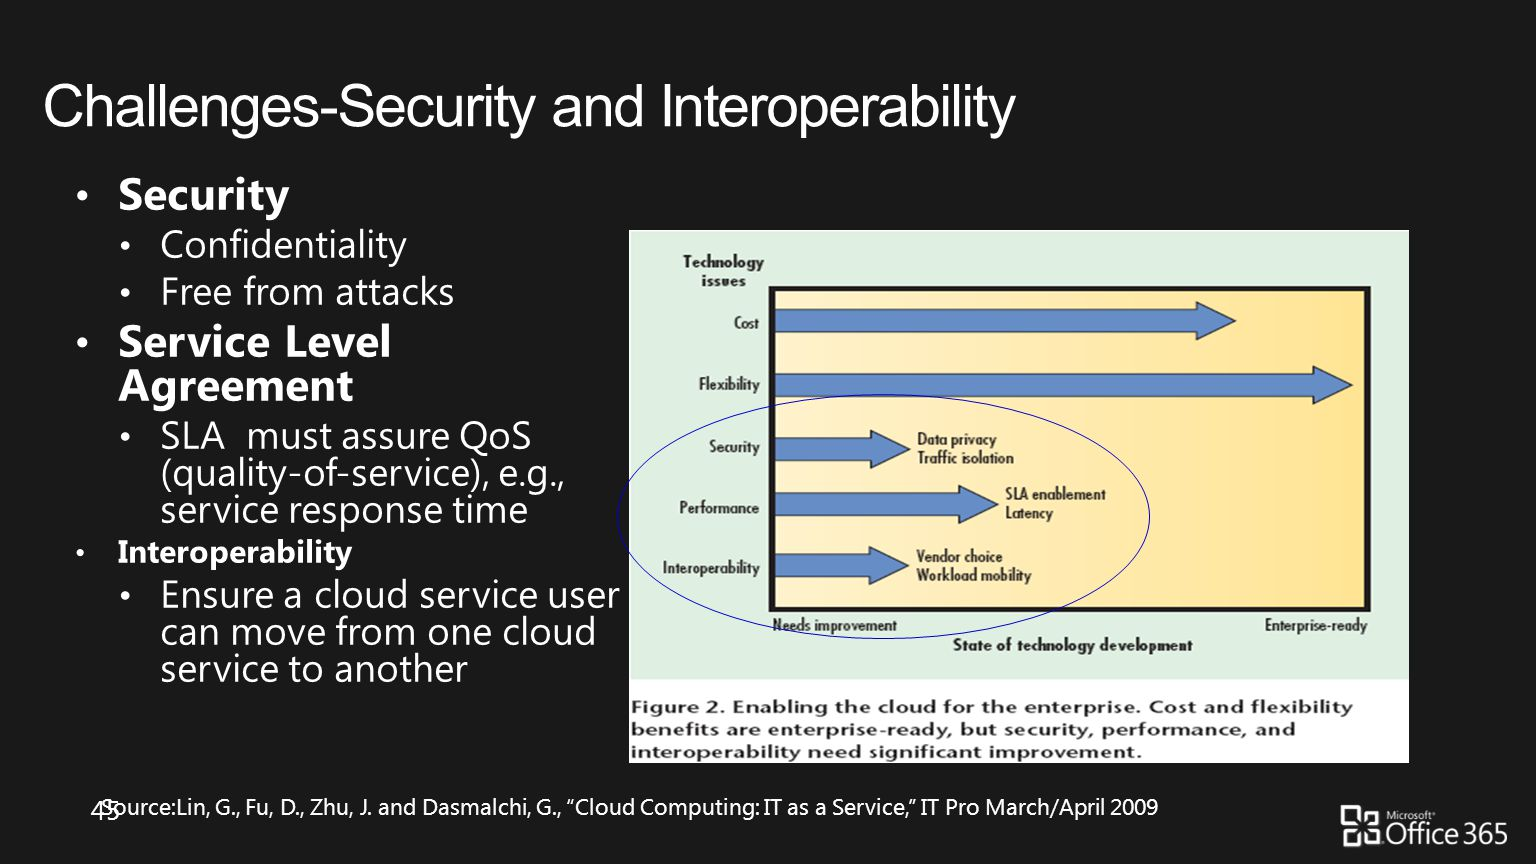 Challenges-Security and Interoperability